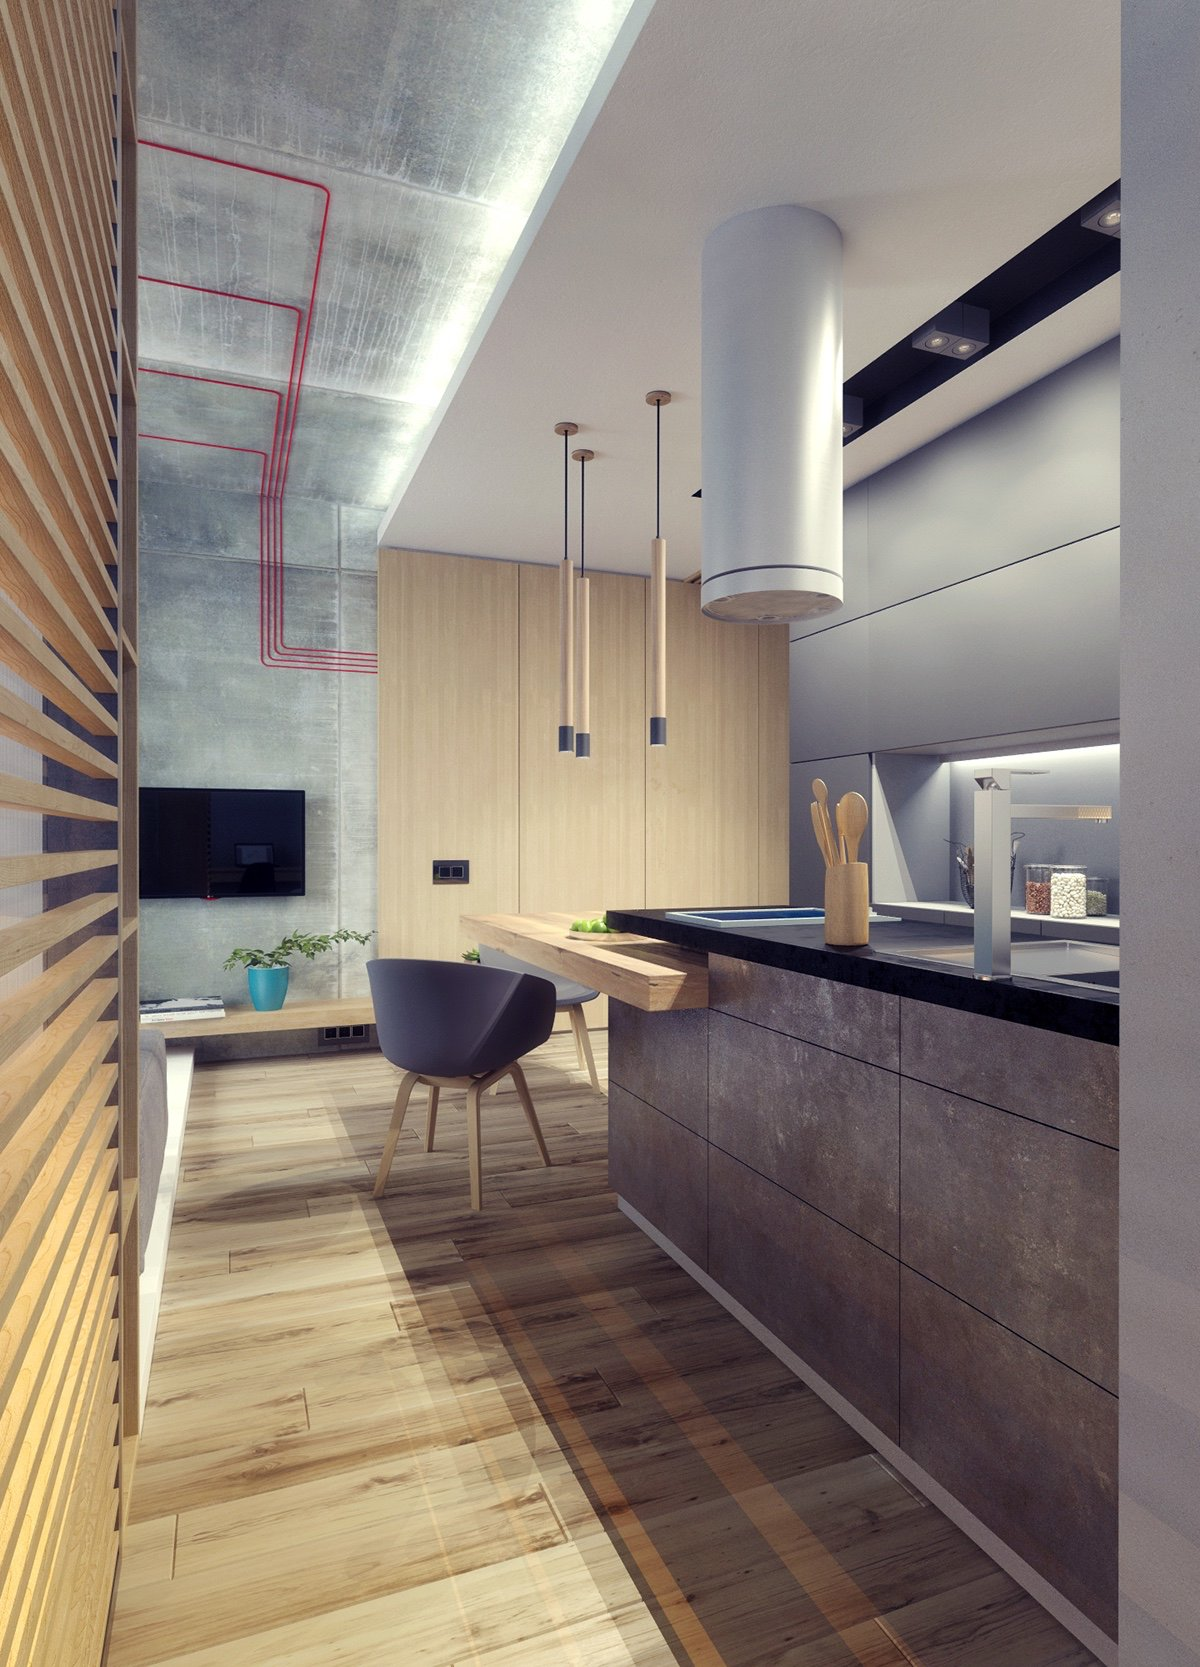 3 Studio Apartments Under 50sqm For City Dwelling Couples Including